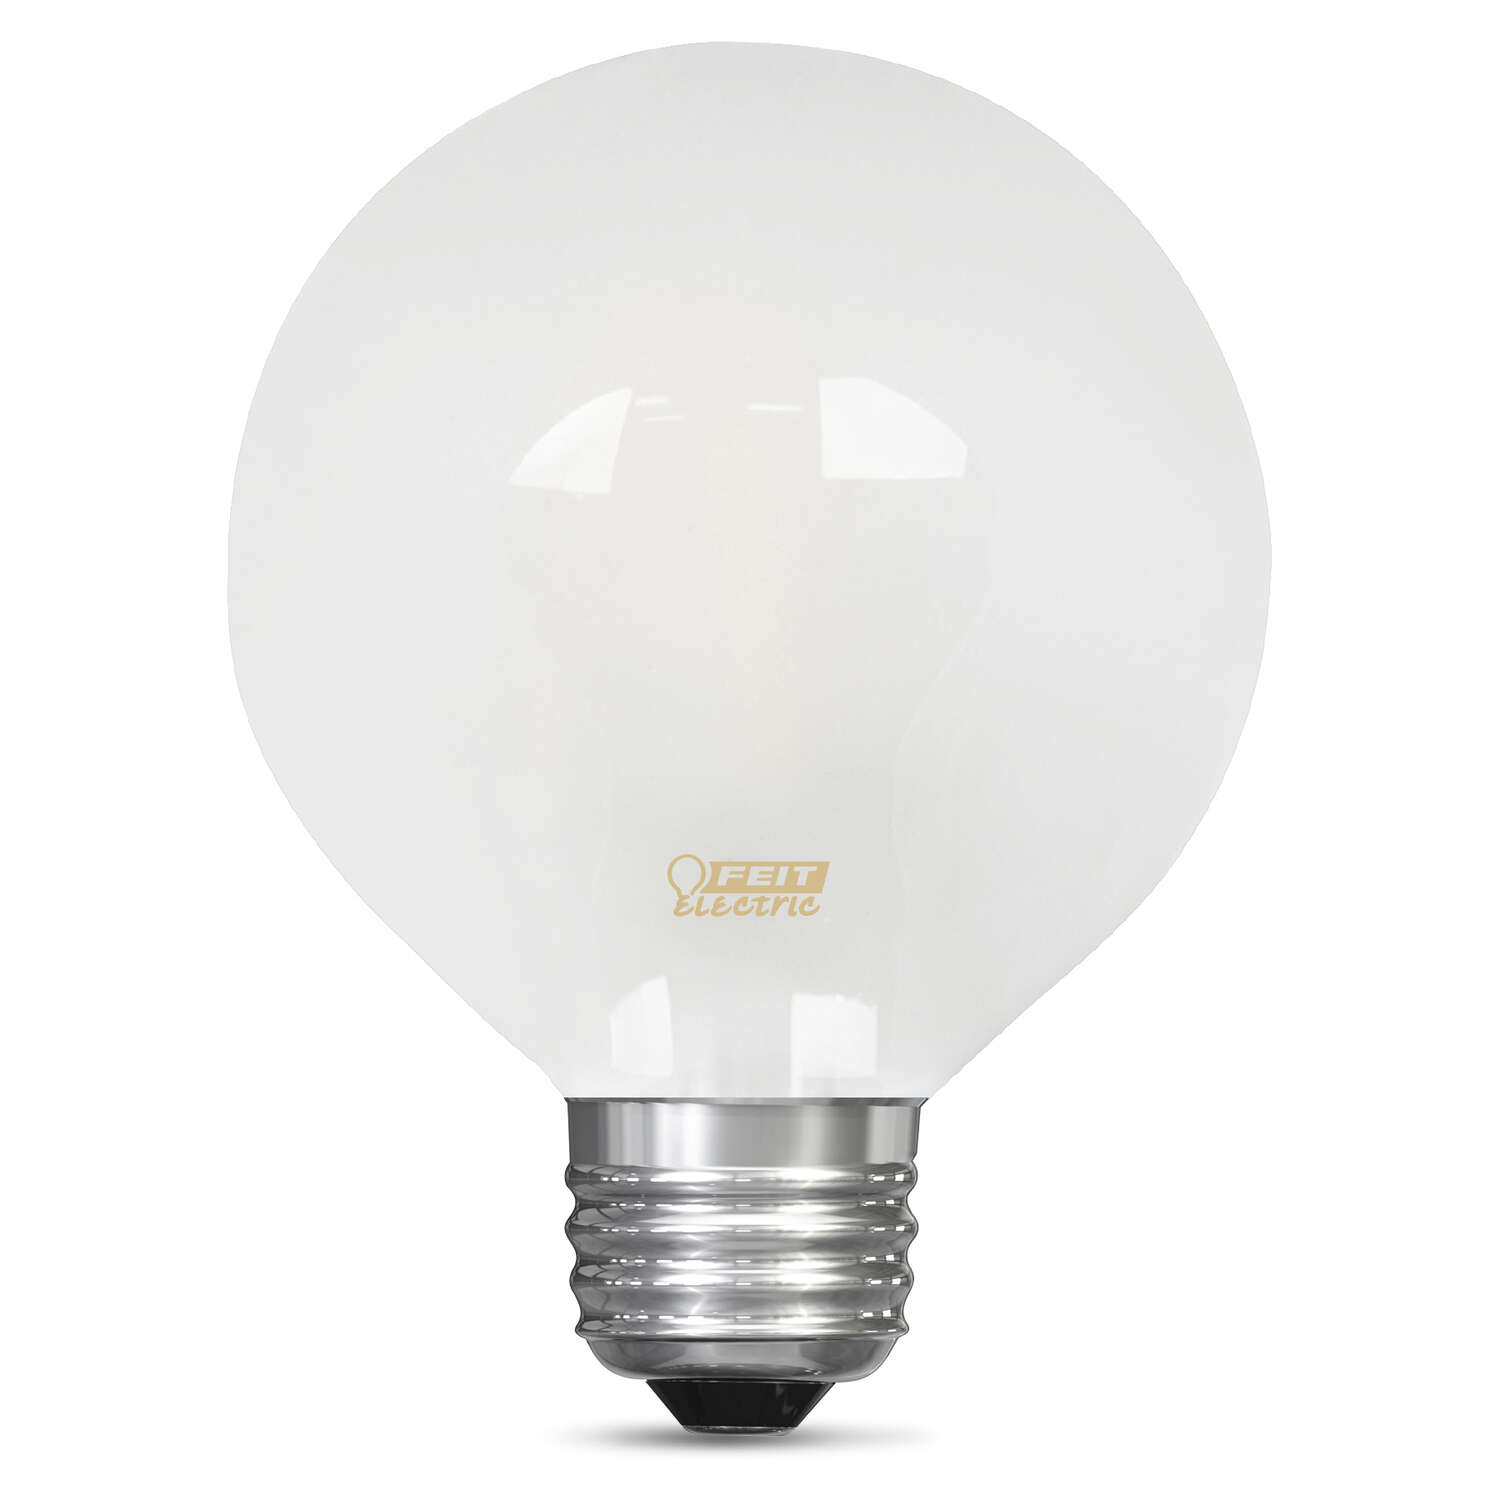 FEIT Electric  2.5 watts G25  LED Bulb  180 lumens Soft White  Globe  25 Watt Equivalence